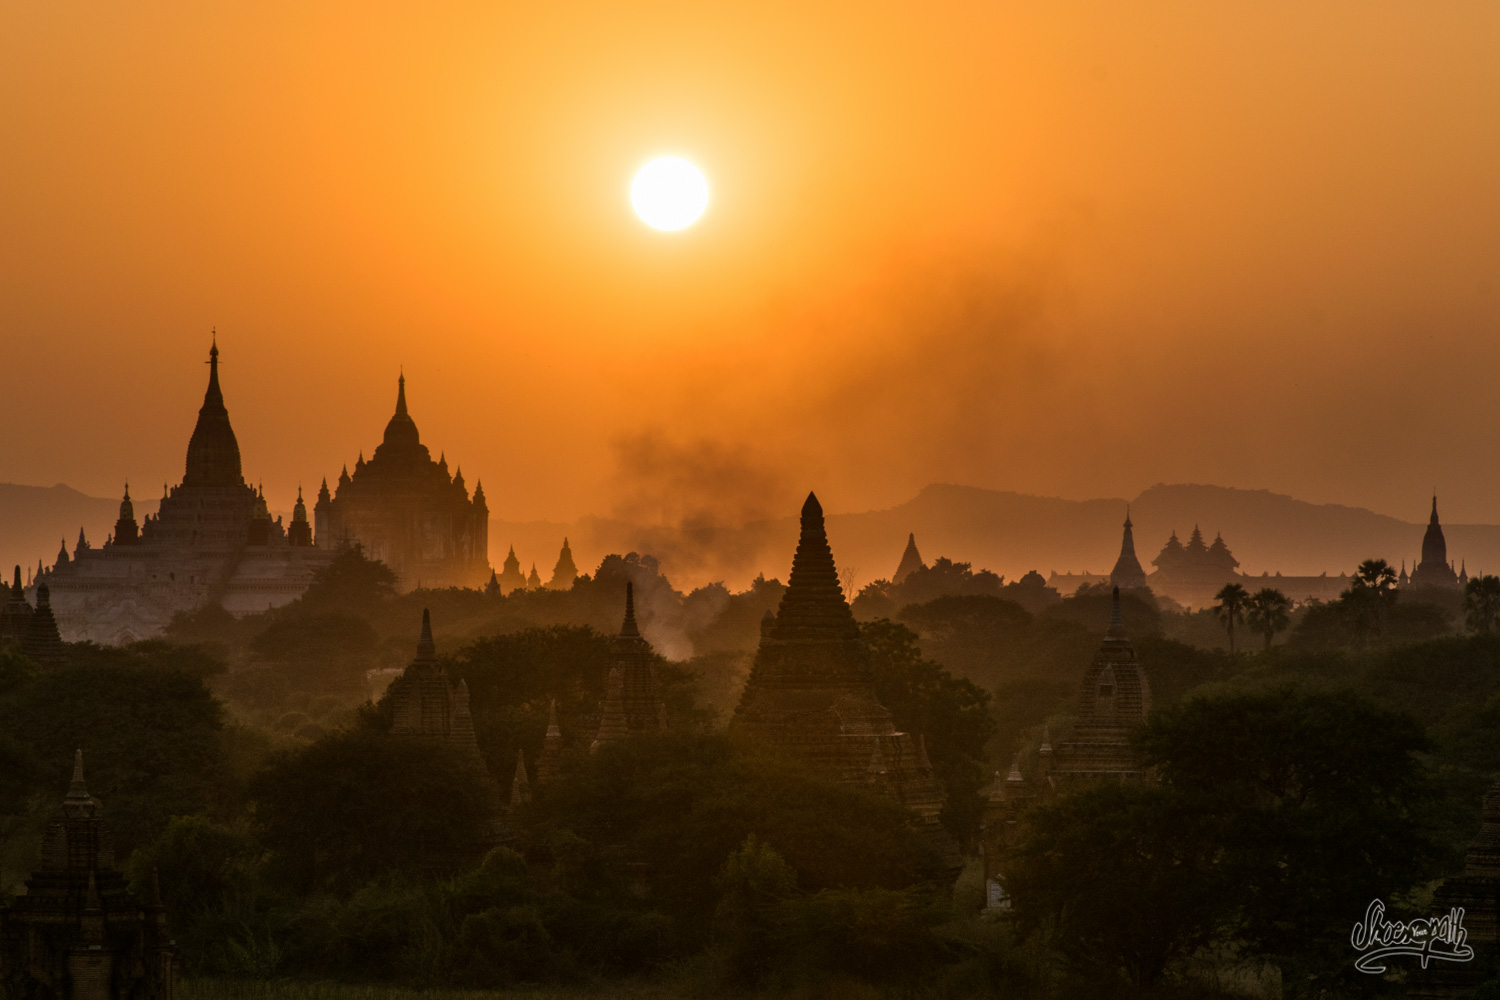 Flamming sunset over Bagan's pagodas